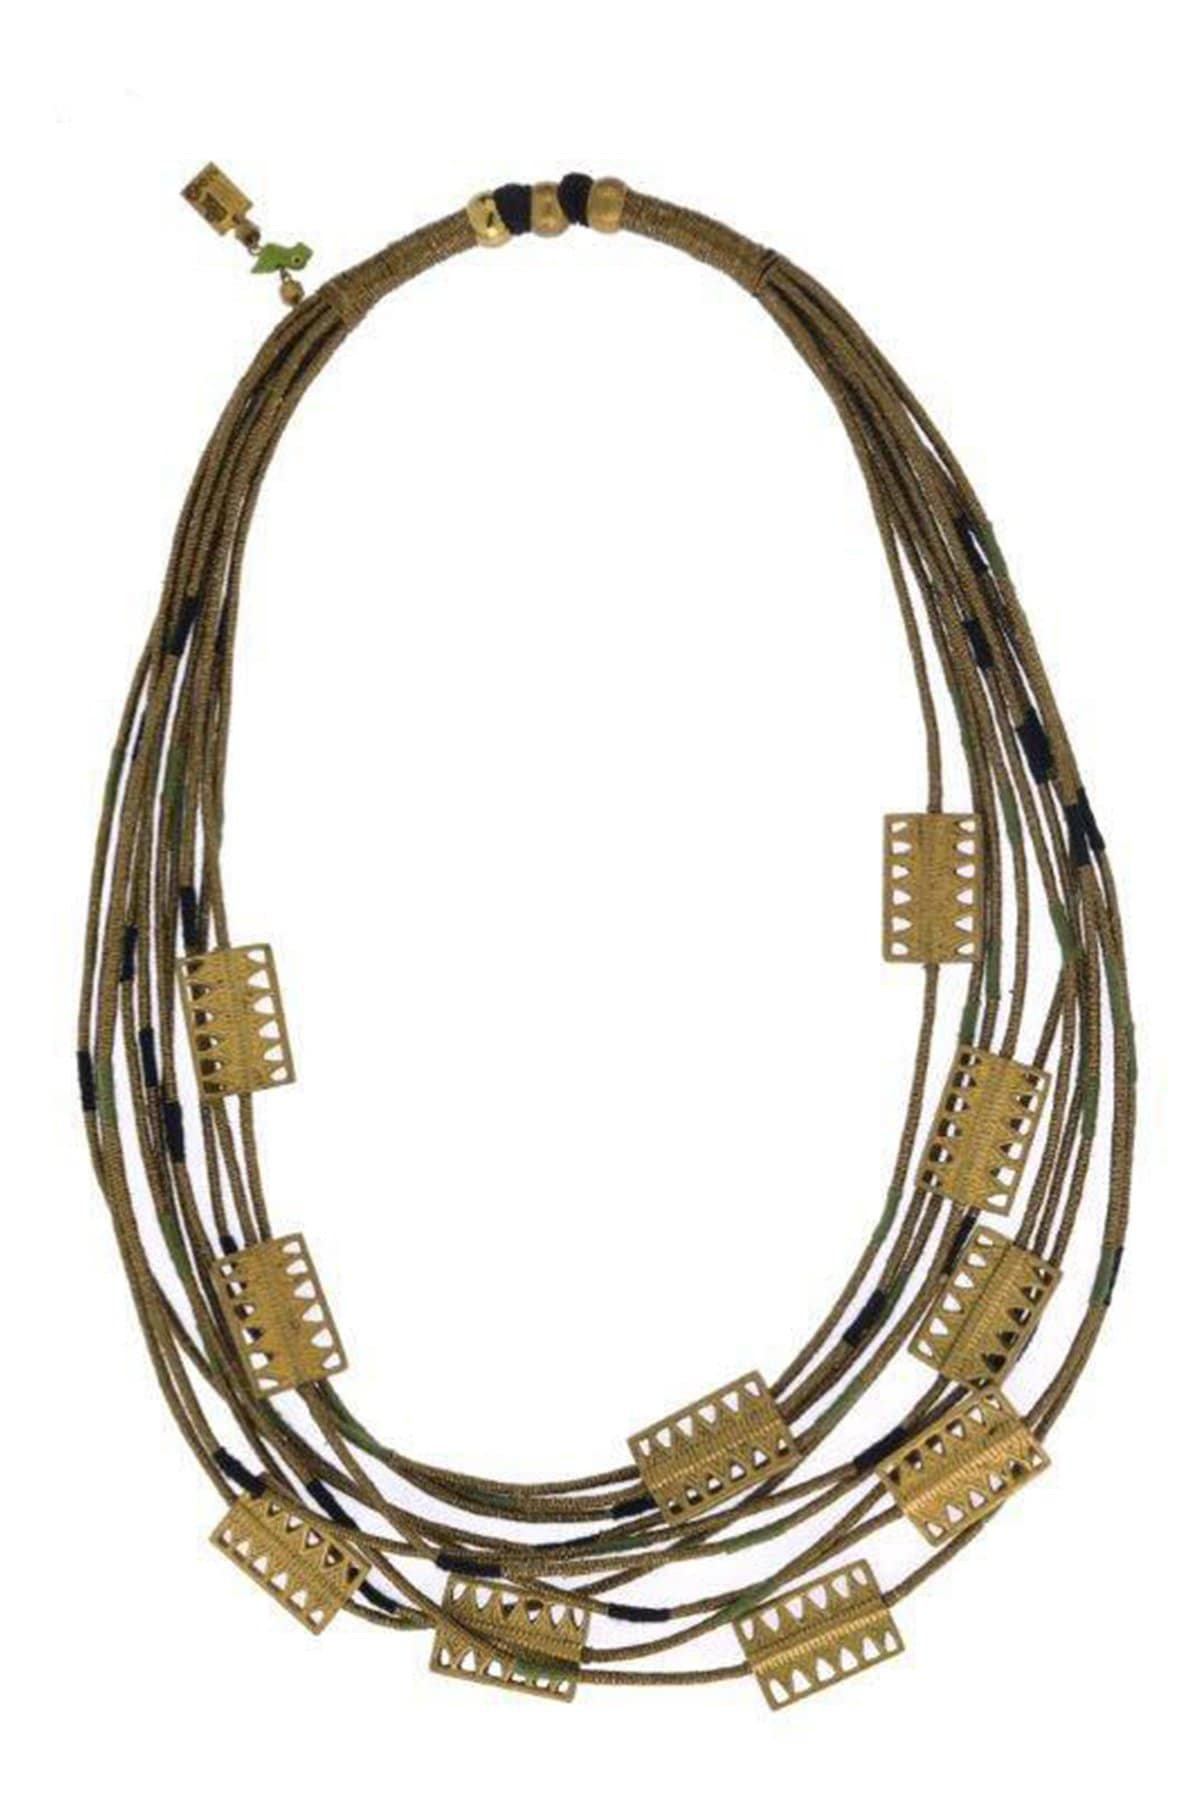 Mayabazaar Jewellery Shachi multi-strand necklace